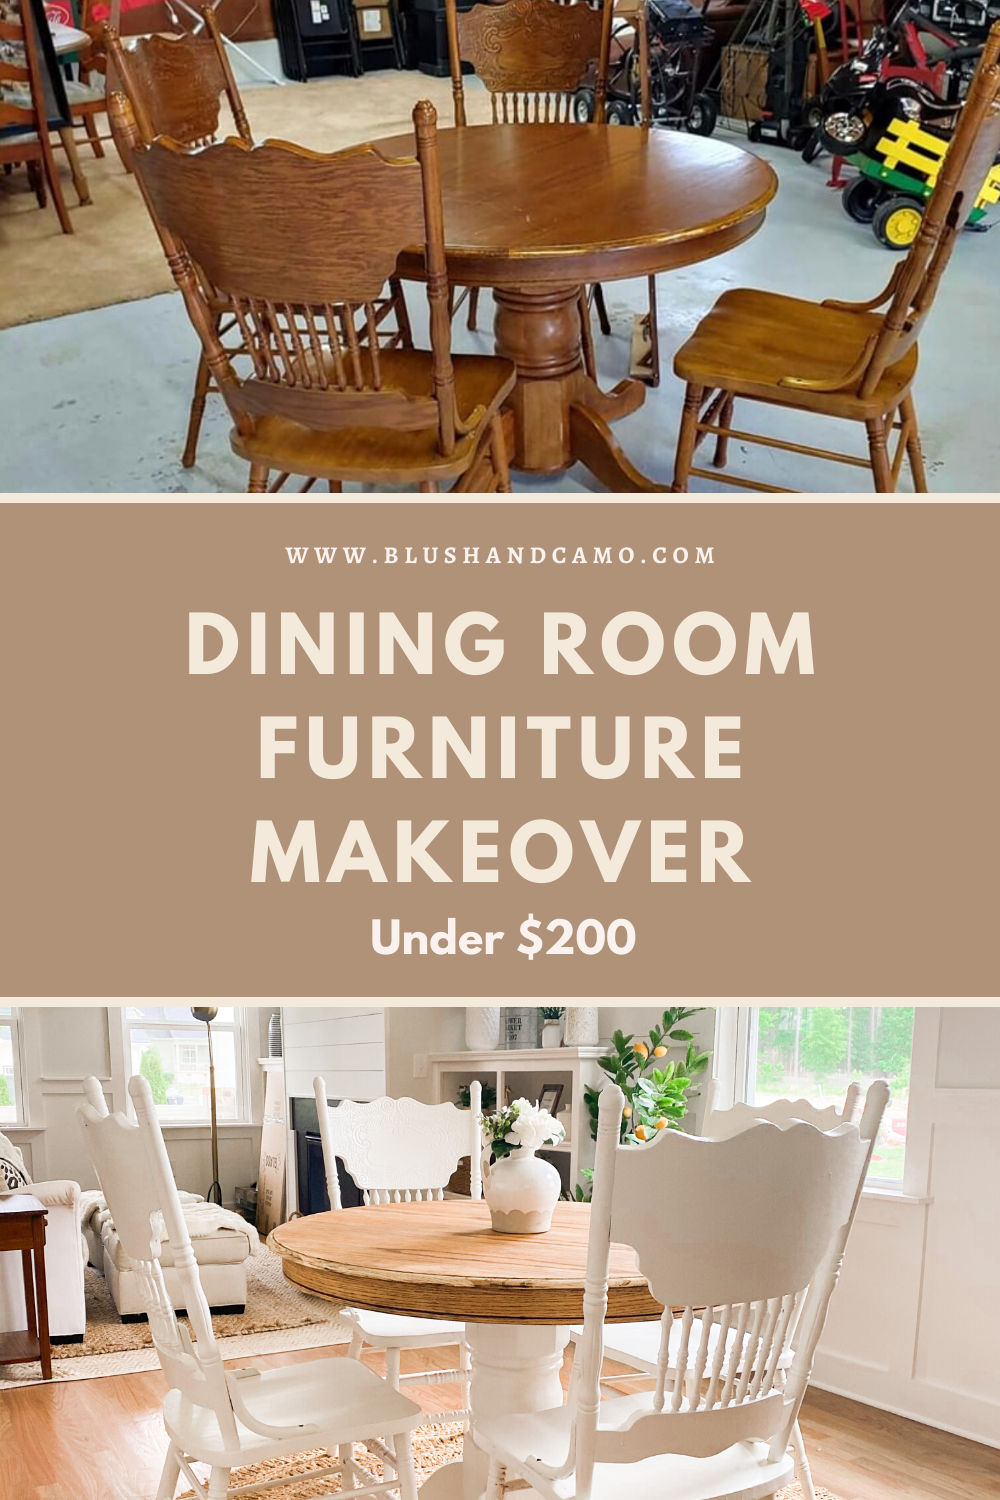 Dining Room Furniture Makeover Under 200 Blush Camo In 2020 Dining Room Furniture Makeover Furniture Makeover Farmhouse Dining Room Set